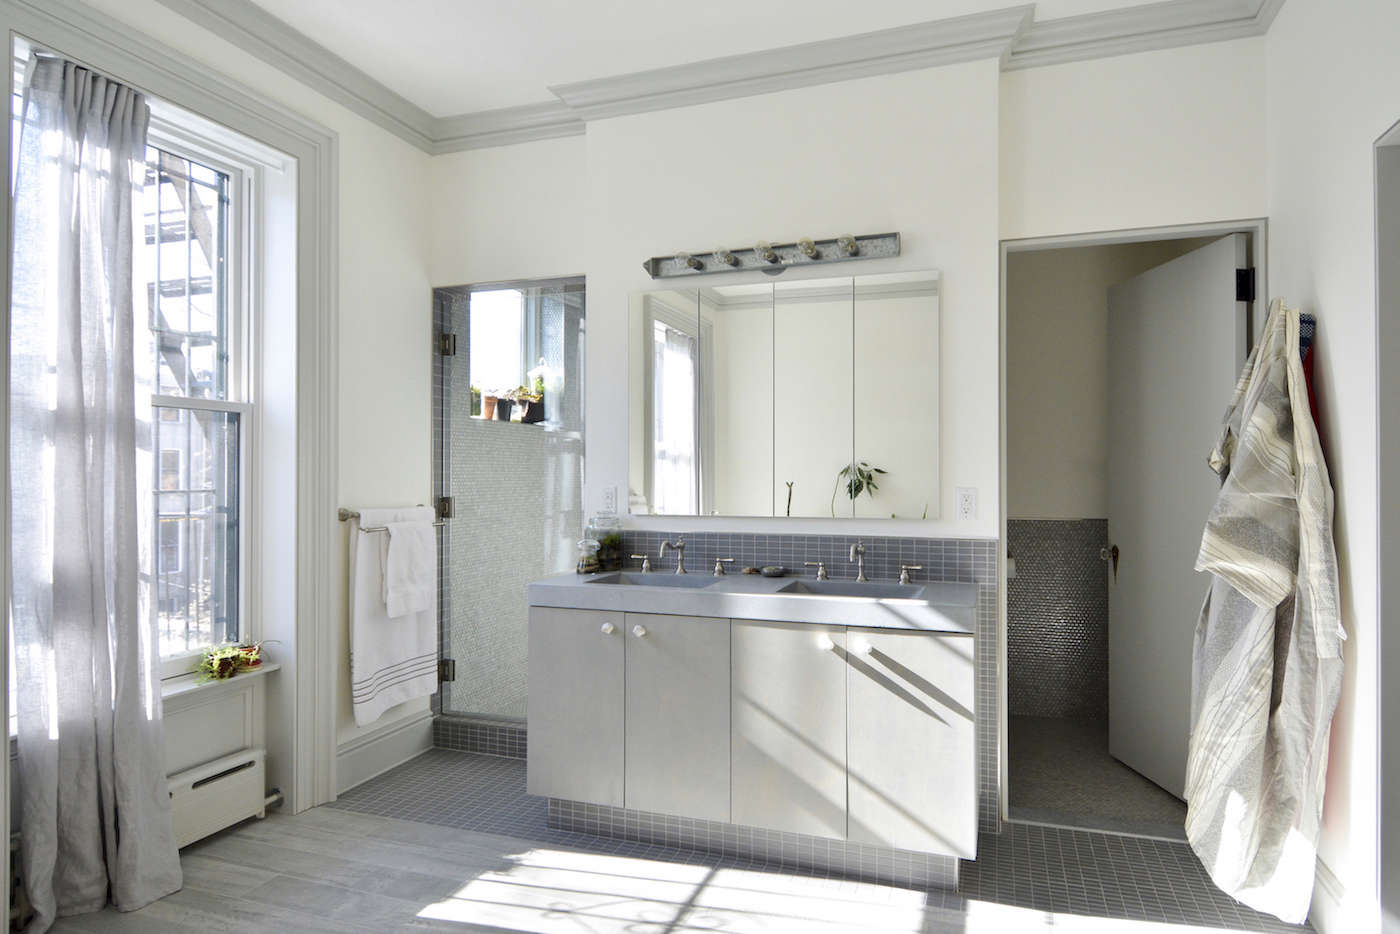 Architects Gregory Merkel and Catalina Rojas Townhouse master bath | Remodelista